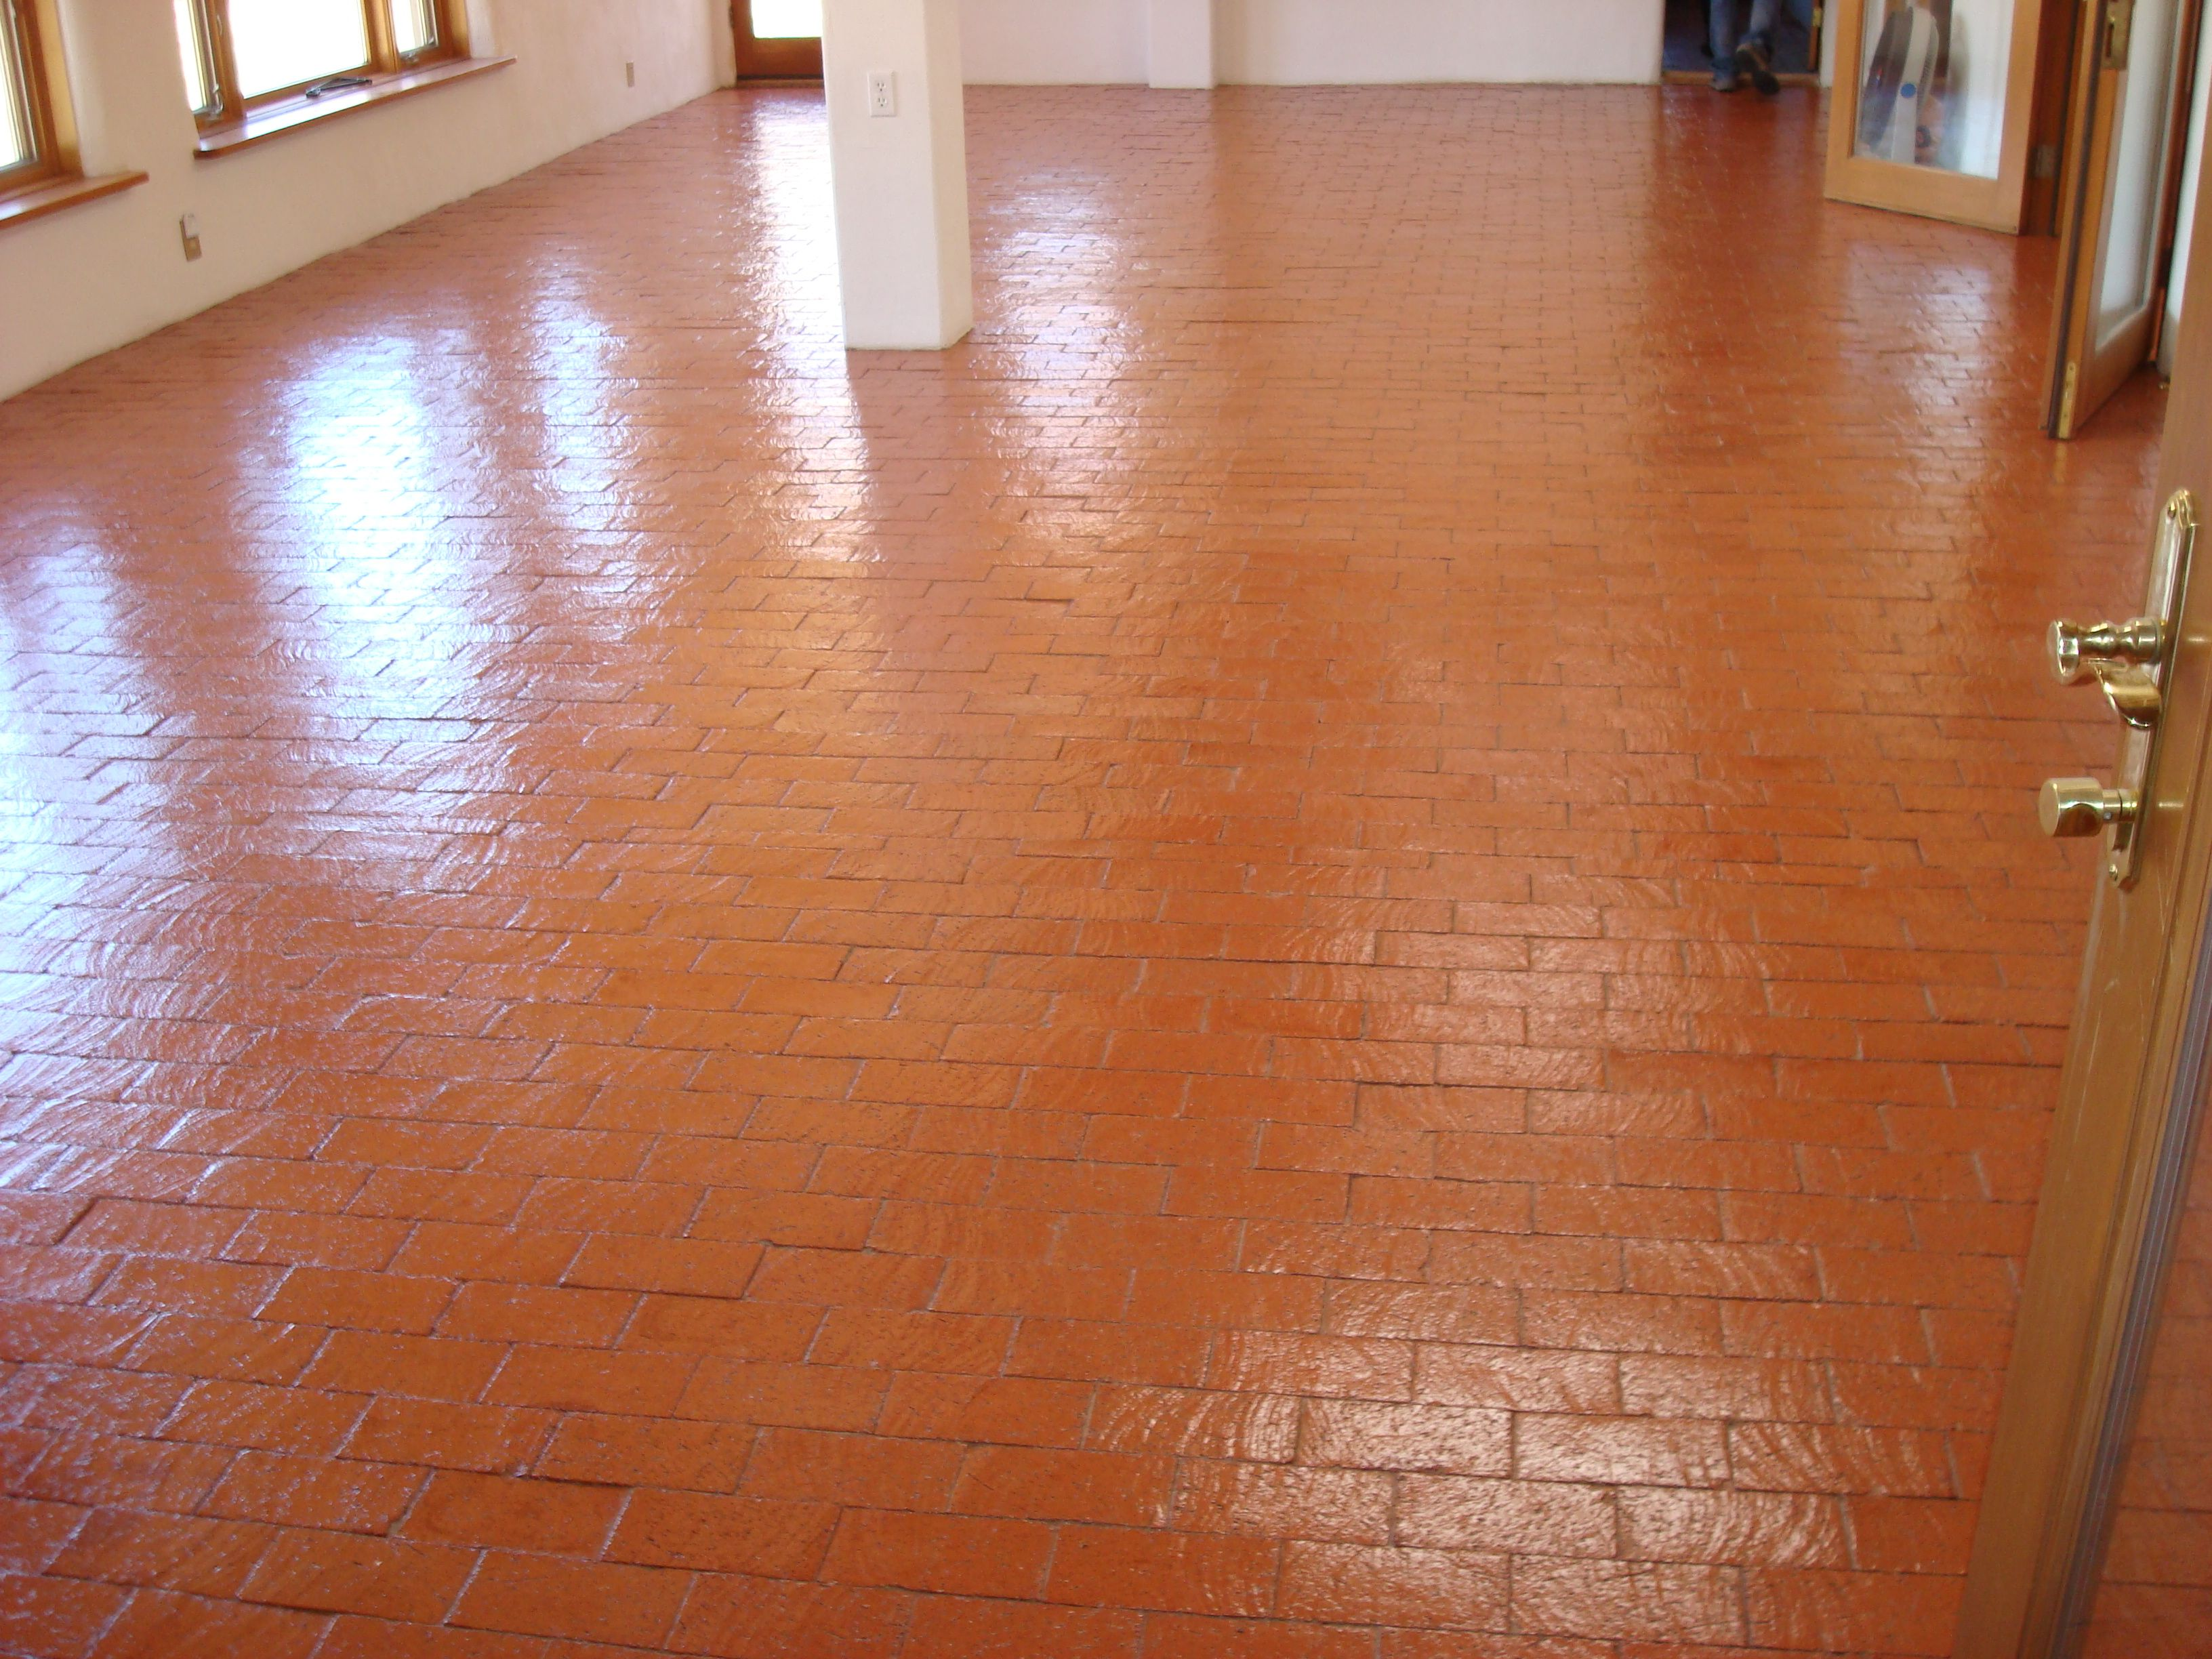 Shiny Cleaned And Sealed Brick Floors Mofab